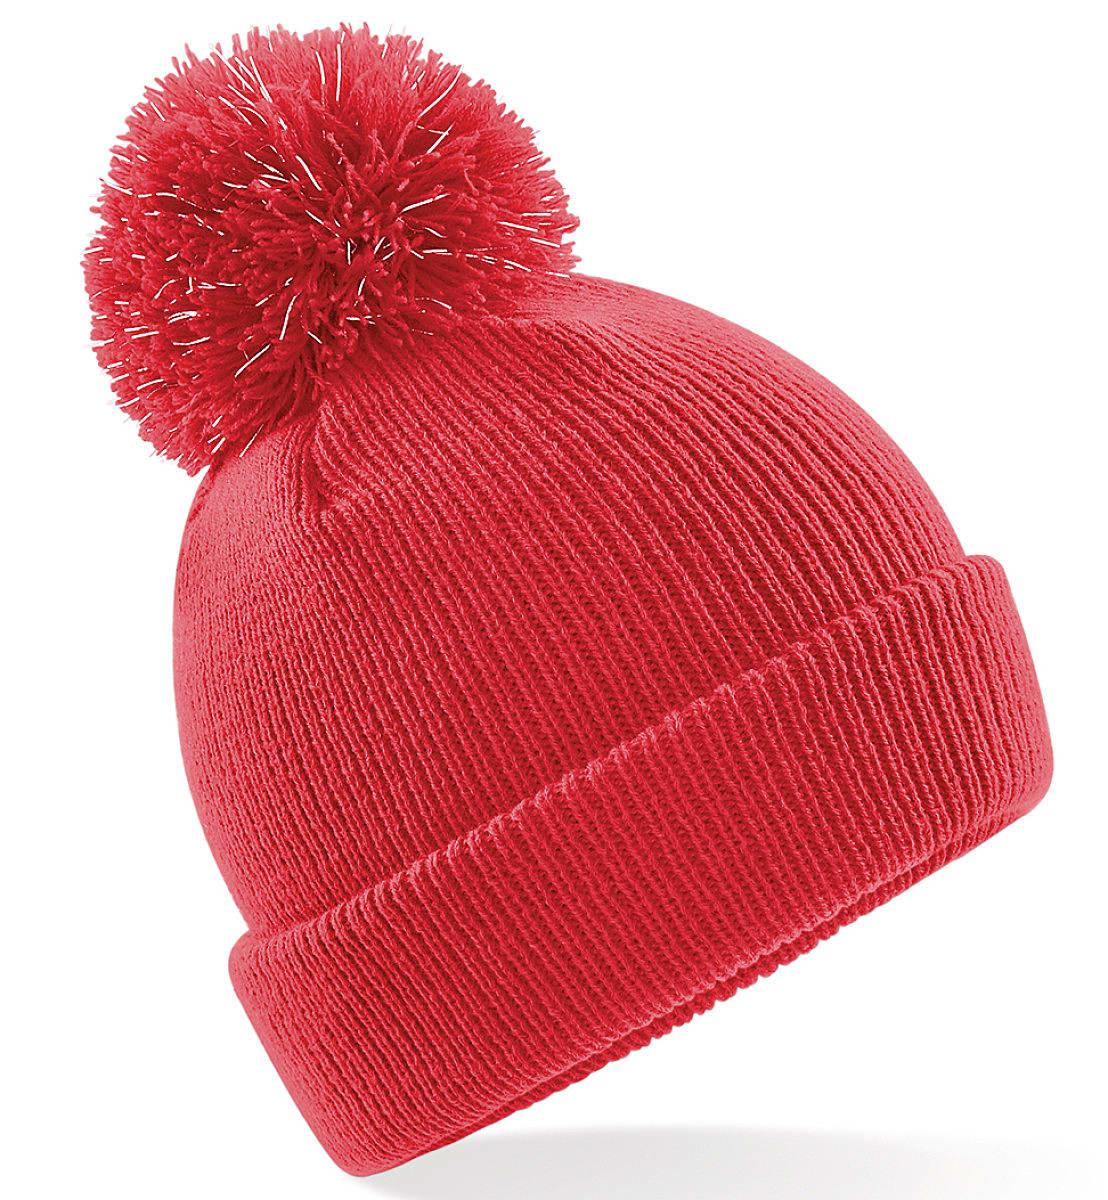 Beechfield Junior Reflective Beanie Hat in Bright Red (Product Code: B406B)